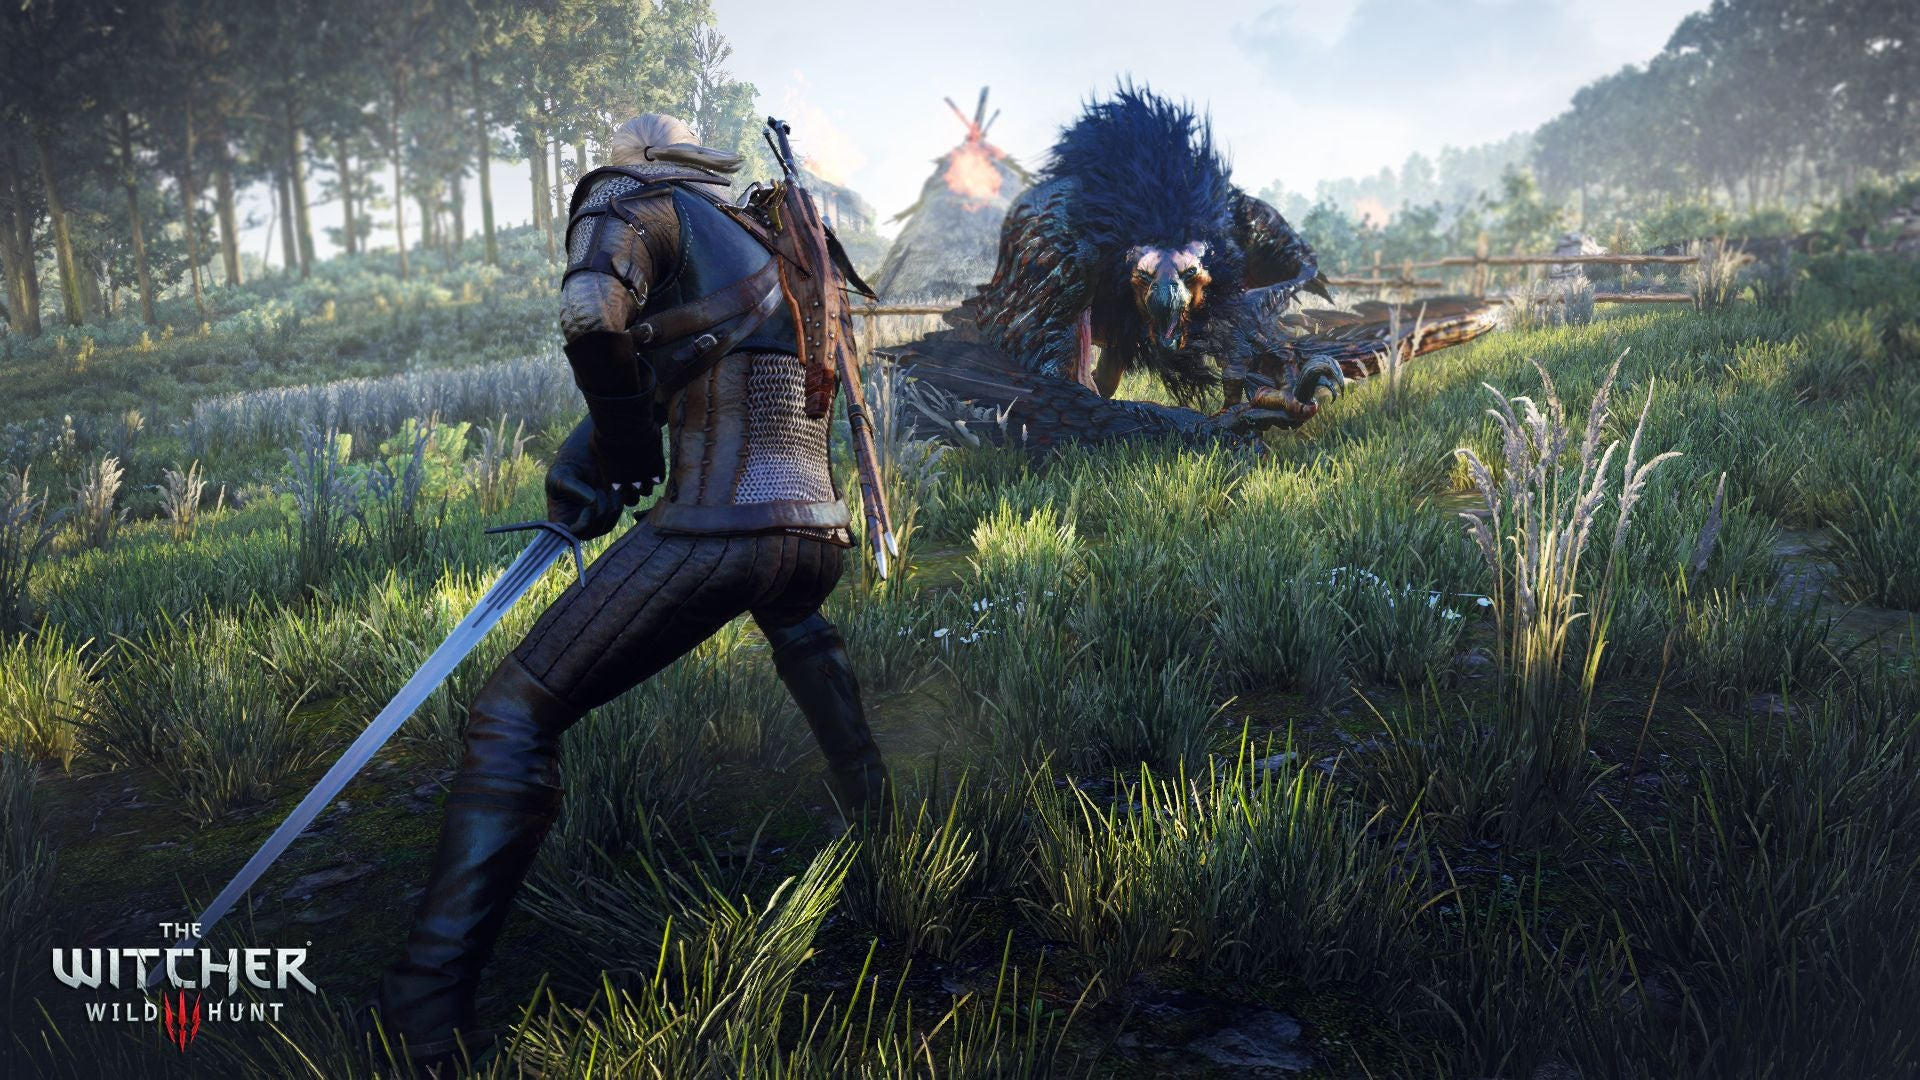 The Witcher 3 Wins Game of the Year At The 2015 Game Awards